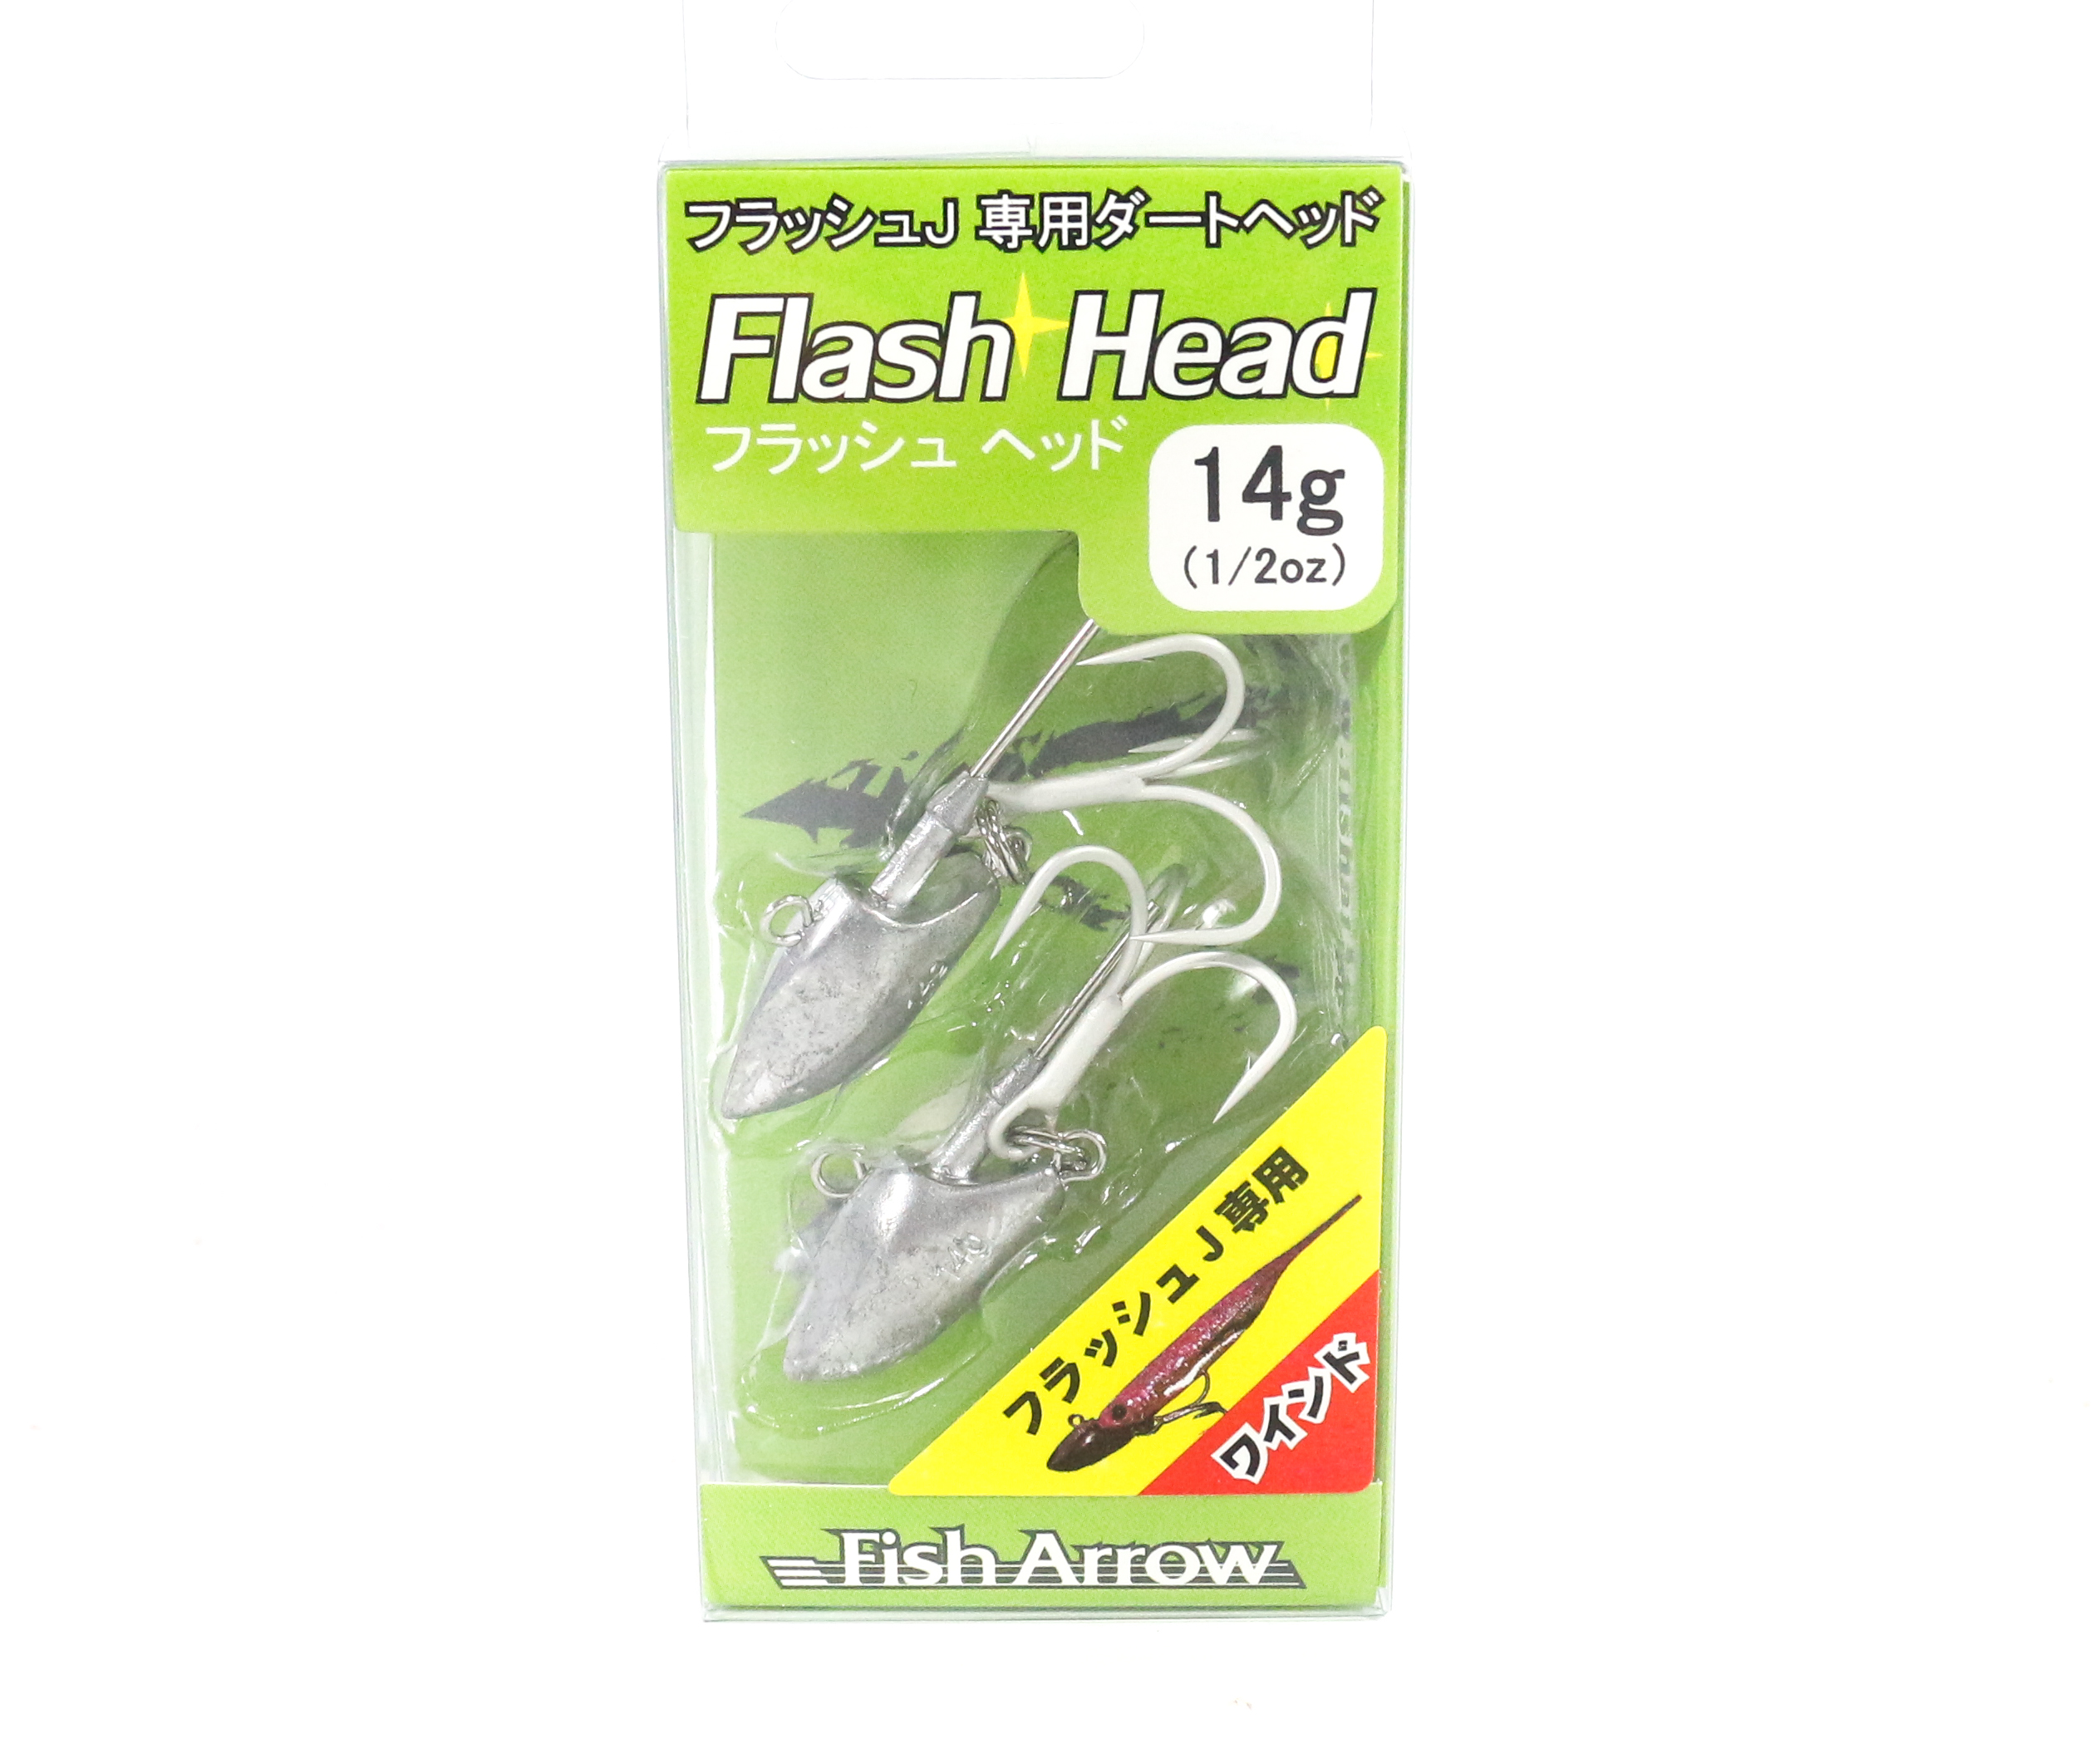 Fish Arrow Jig Head Flash Head with Treble Hook 14 grams (1766)